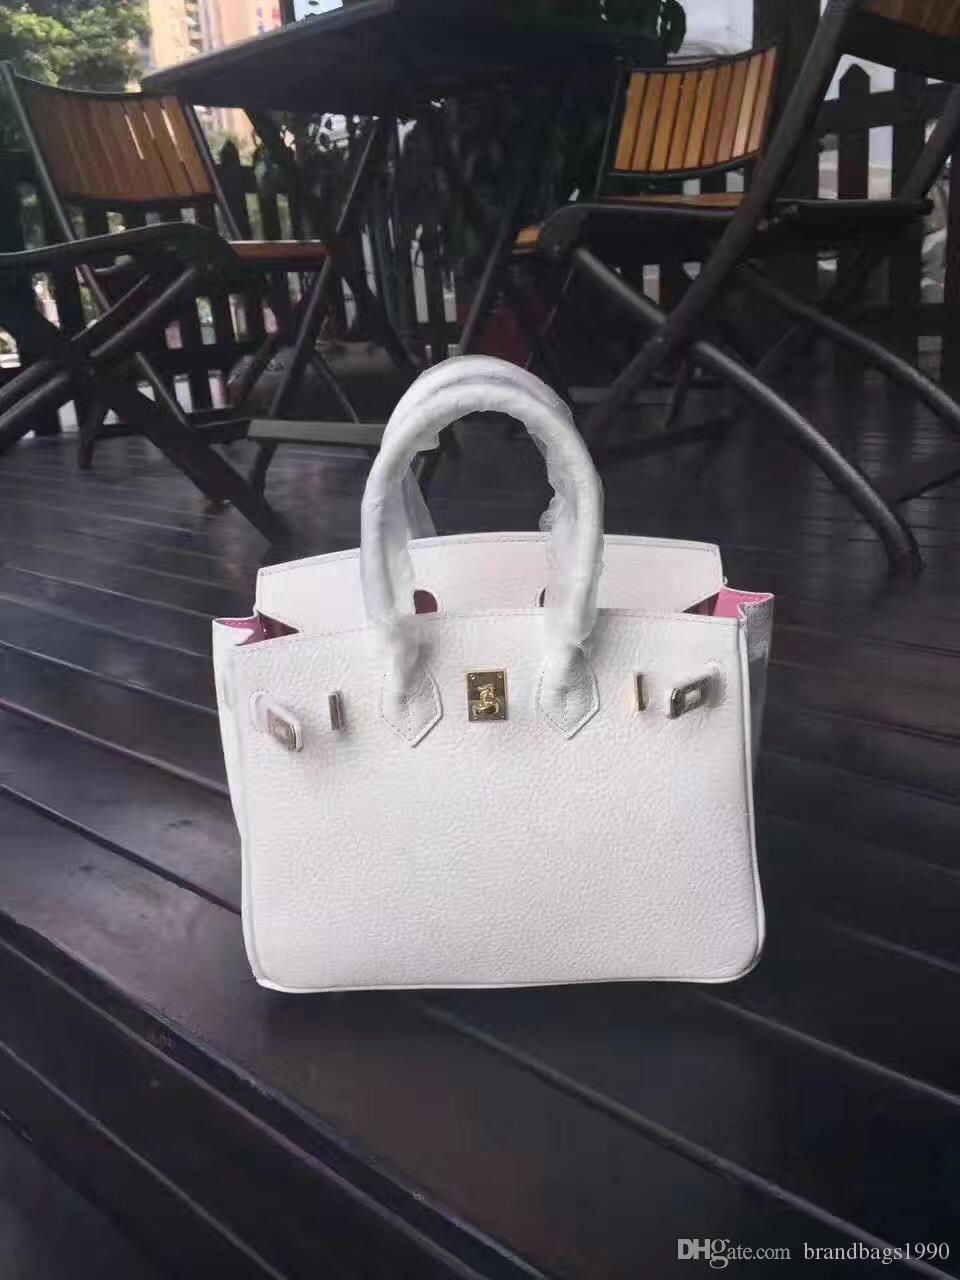 25cm 30cm 35CM Brand Totes White color with Pink lining Genuine leather Shoulder Bags lady Handbag High Quality Free Shipping